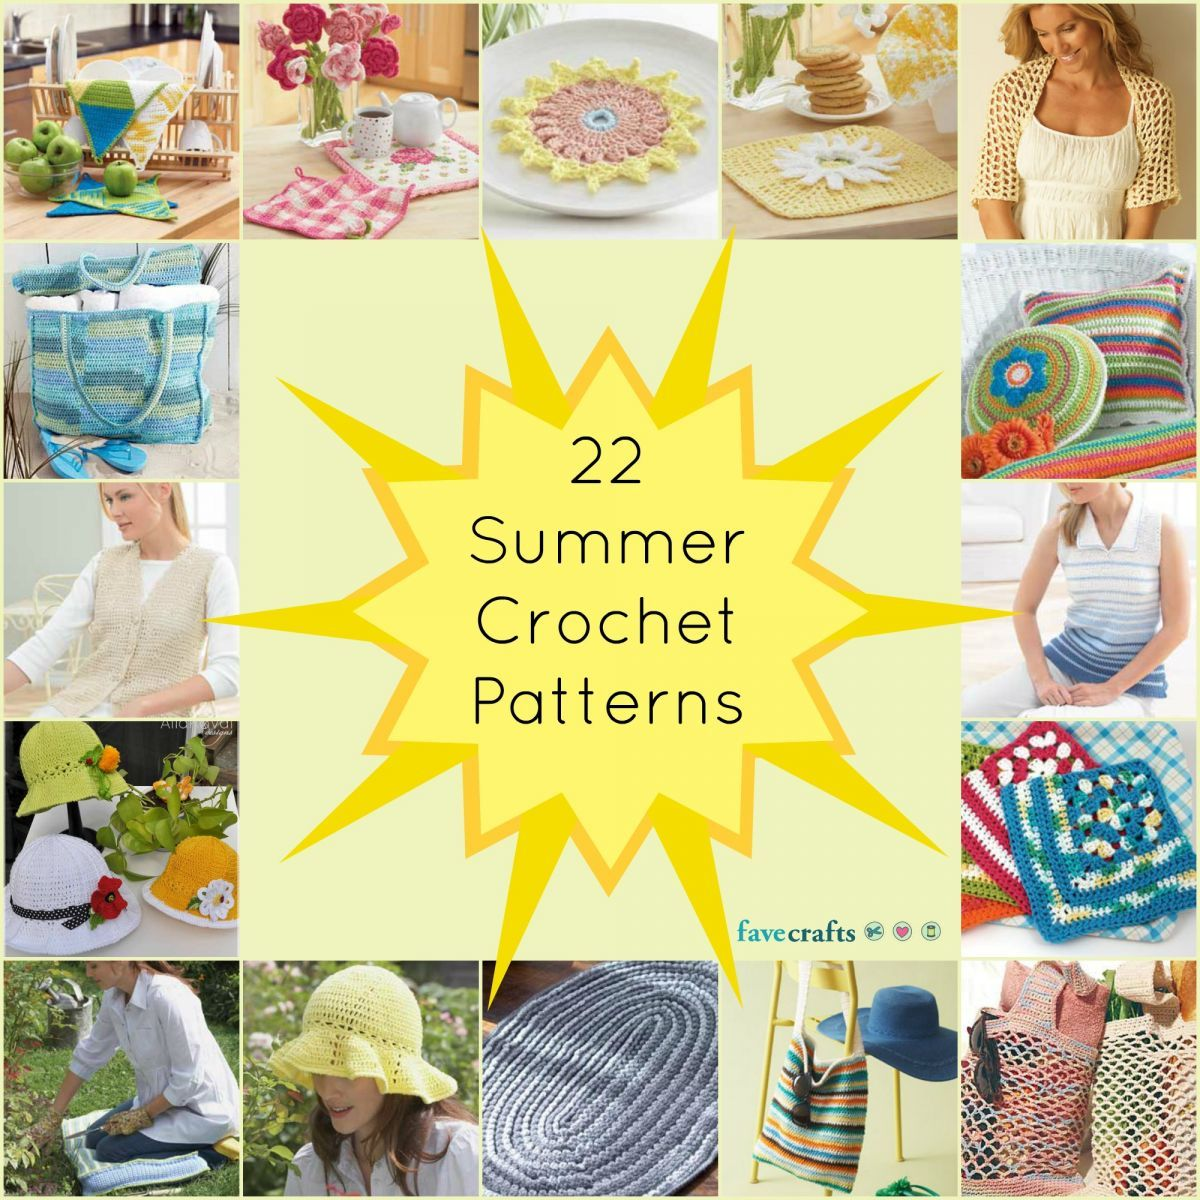 22 Summer Crochet Patterns--crochet patterns for the kitchen, wearable patterns, outdoor crochet patterns, and farmer's market bags.